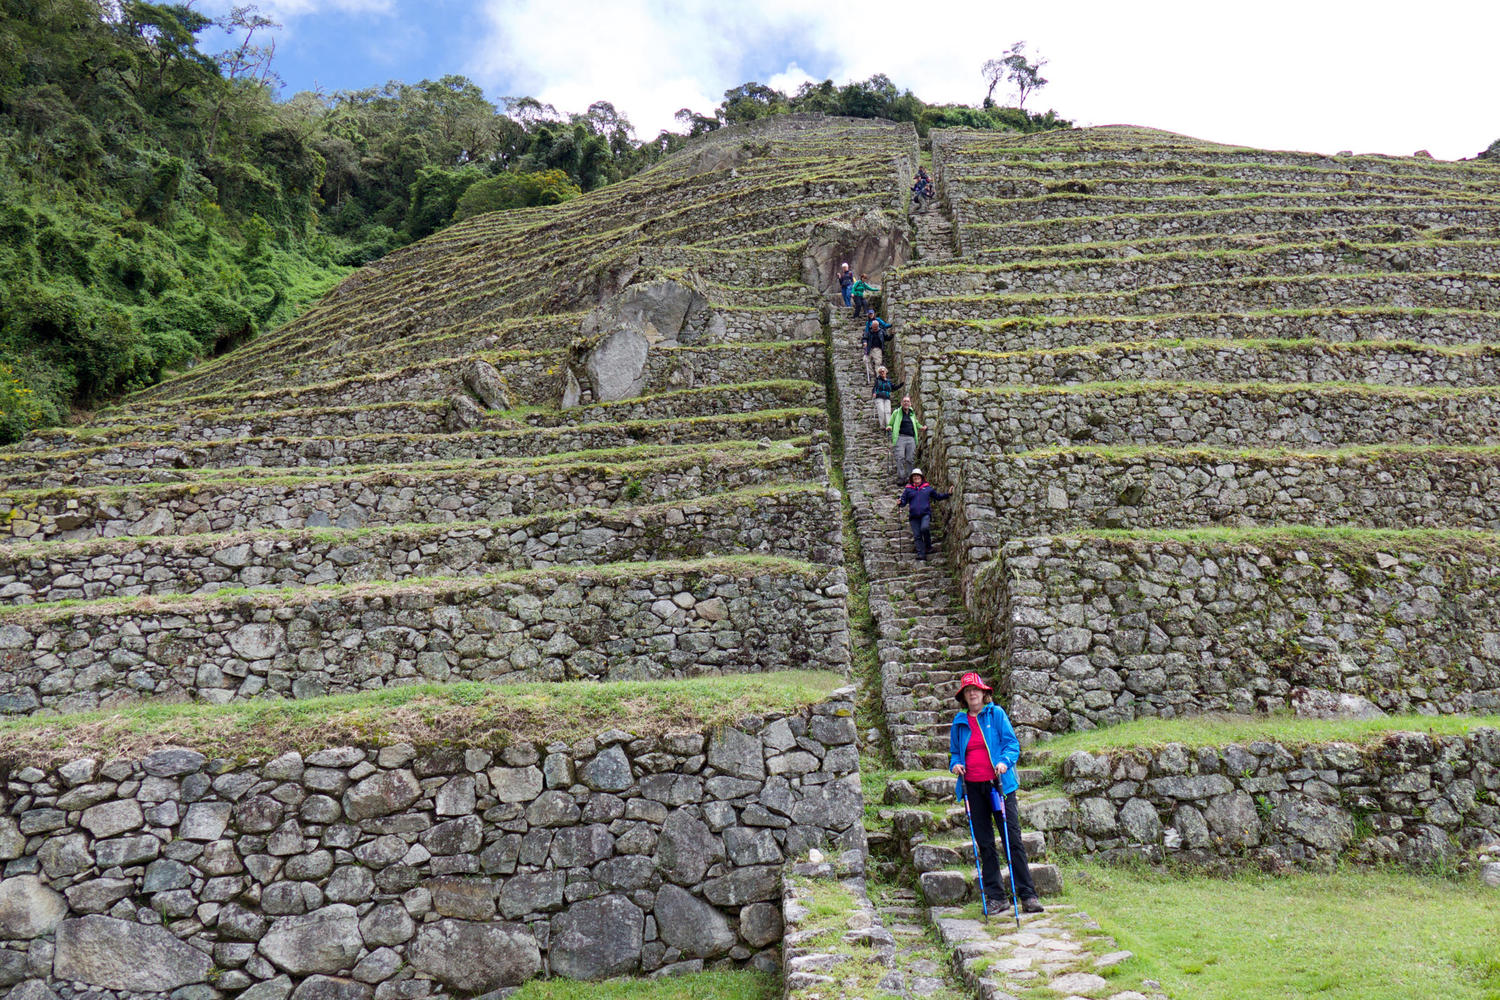 Walking through the ruins of Intipata on the last day of the Inca Trail